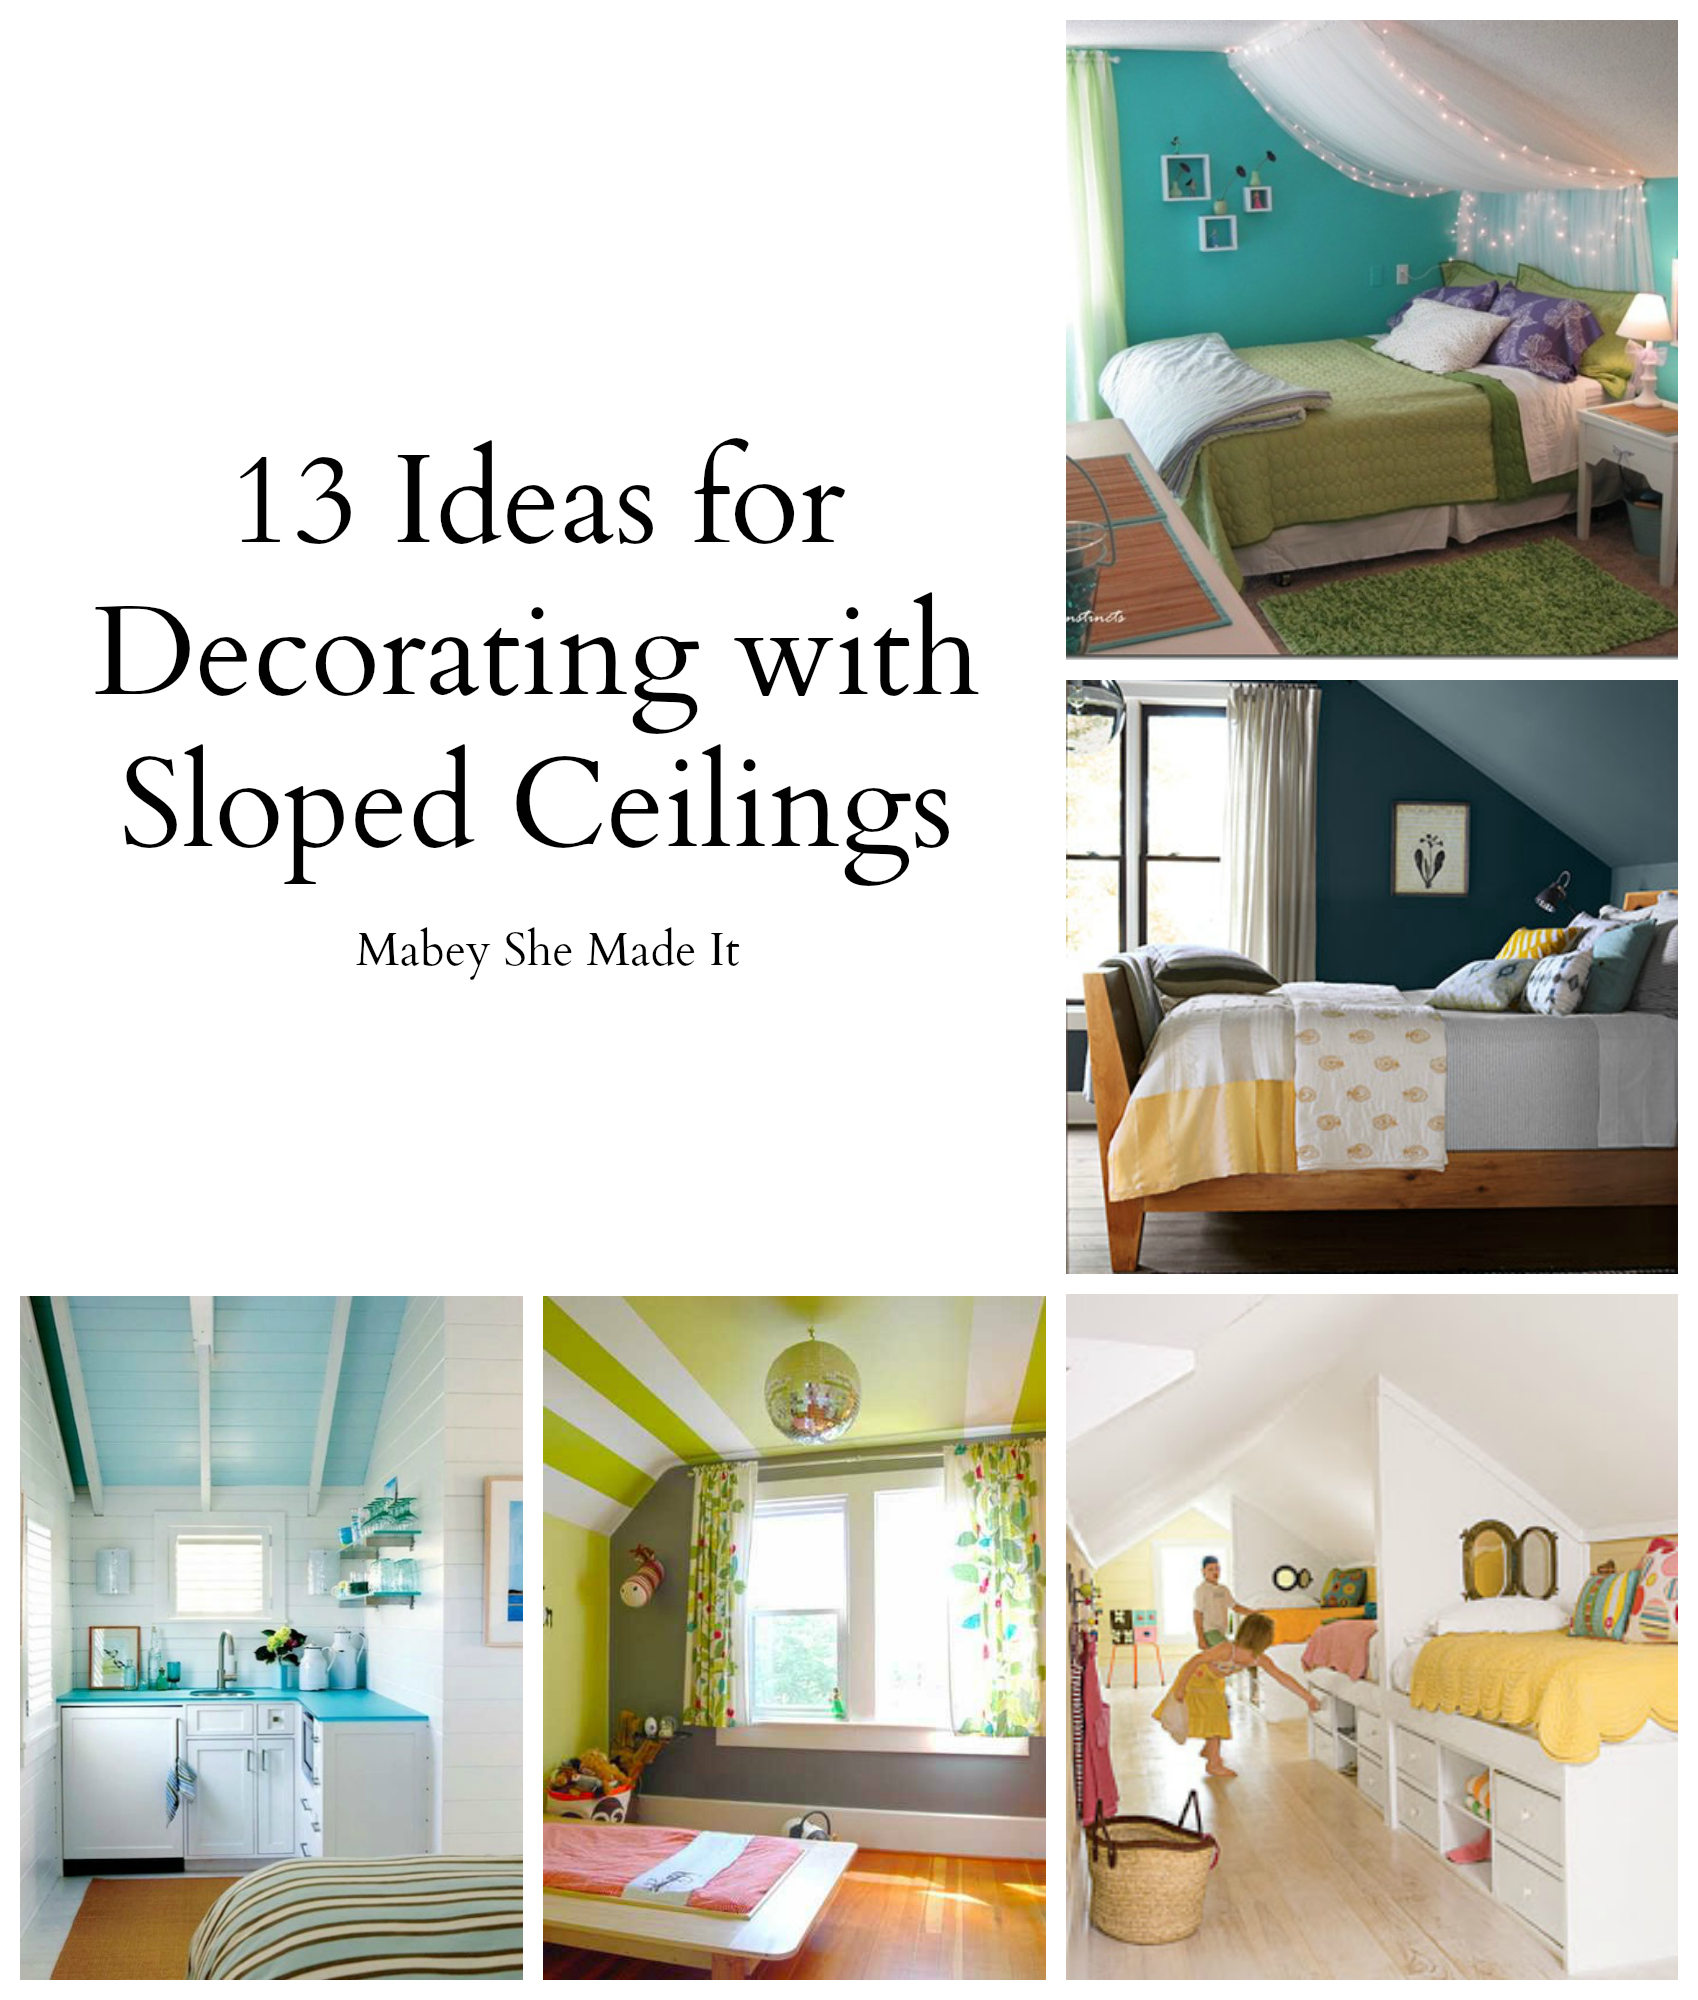 Decorate Walls In Bedroom: 17 Sloped Ceiling Bedroom Design Ideas • Mabey She Made It